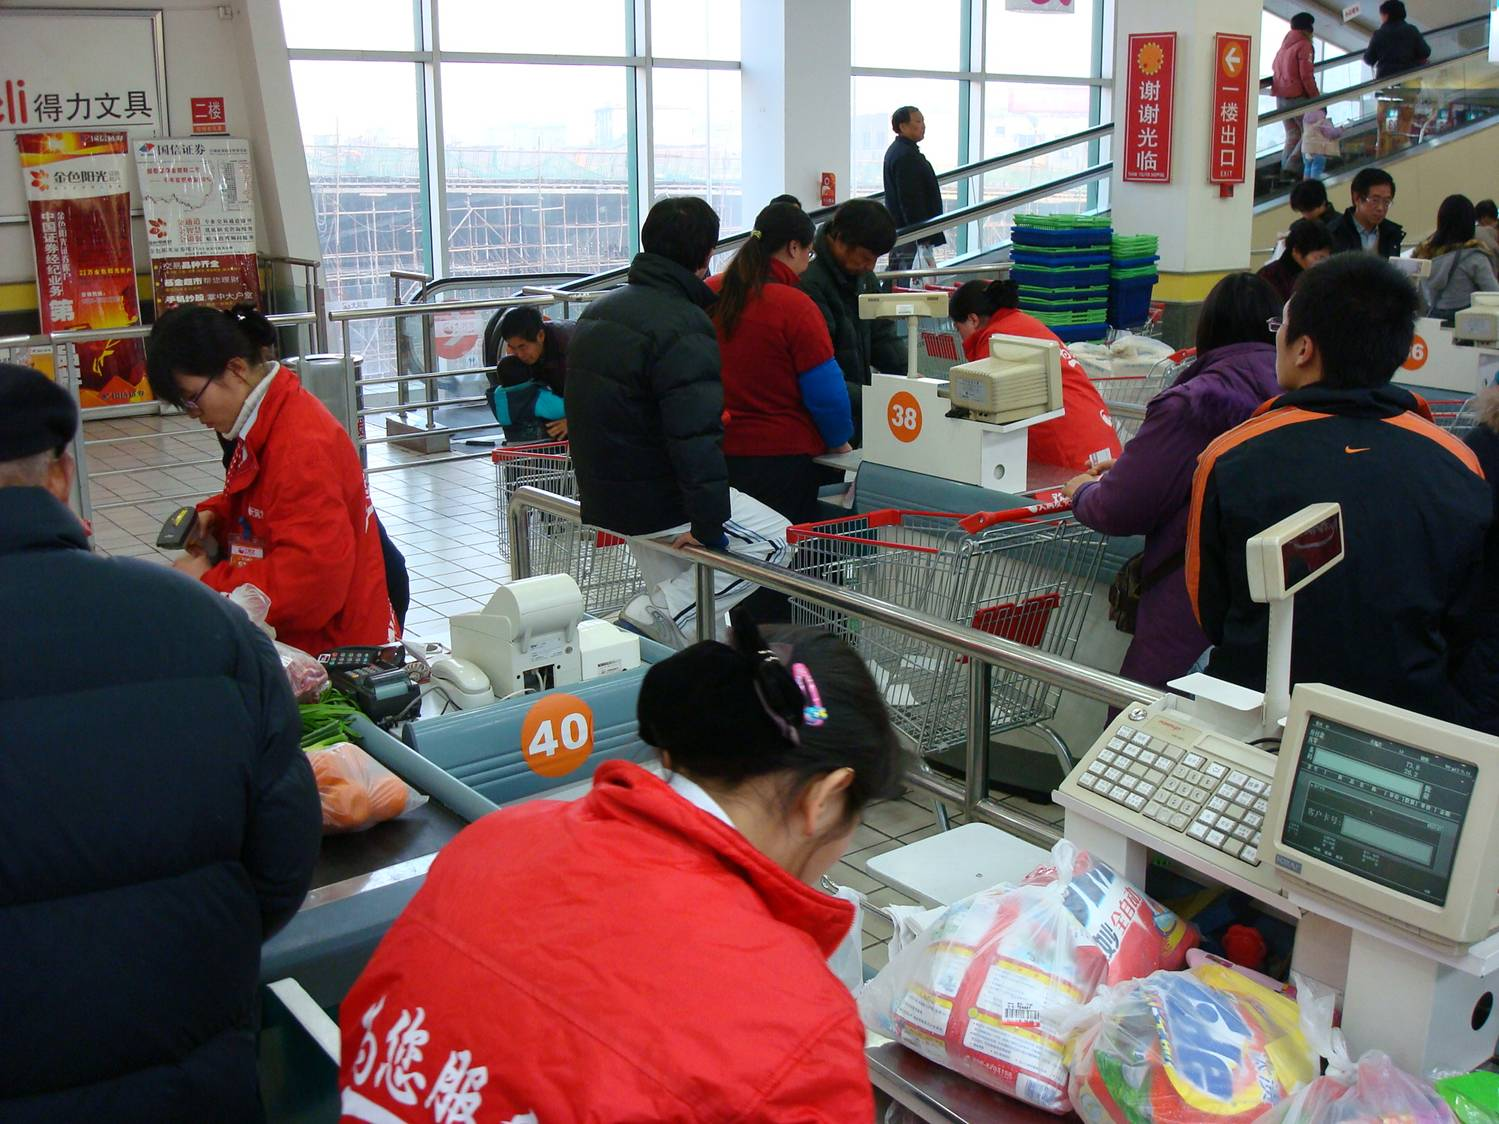 check out  in a Chinese supermarket